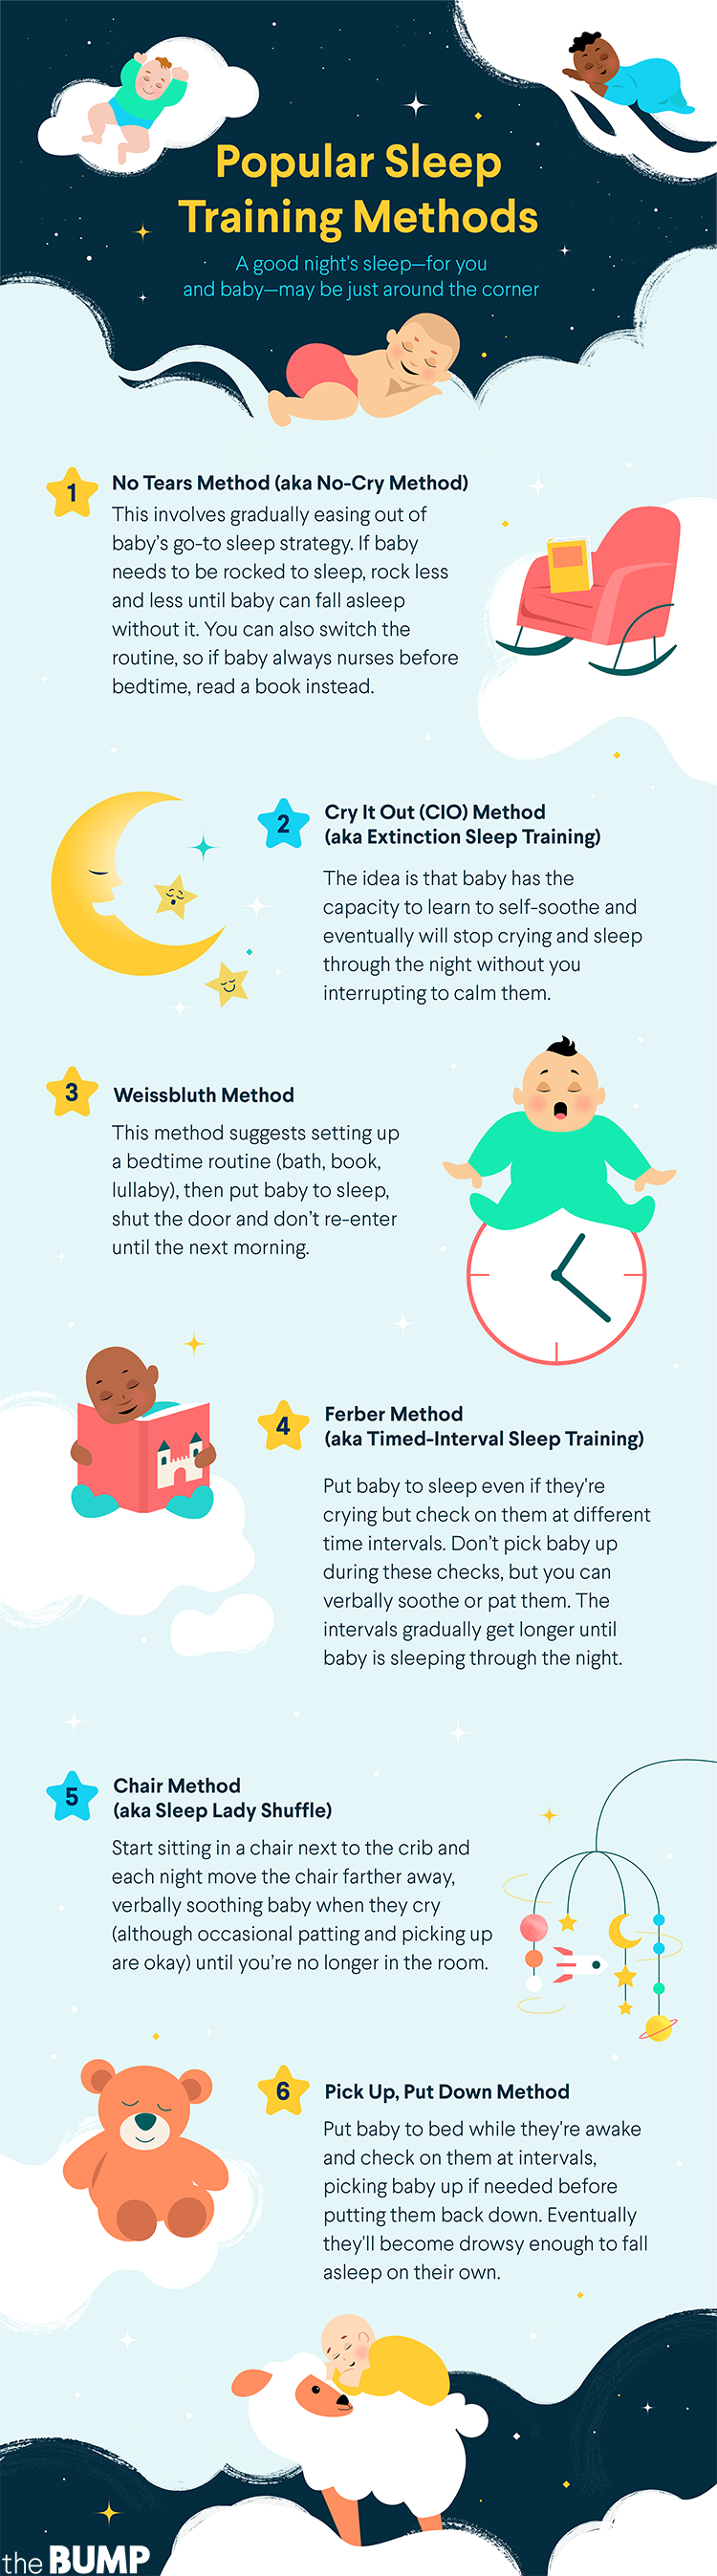 Sleep Training: What It Is and When to Start